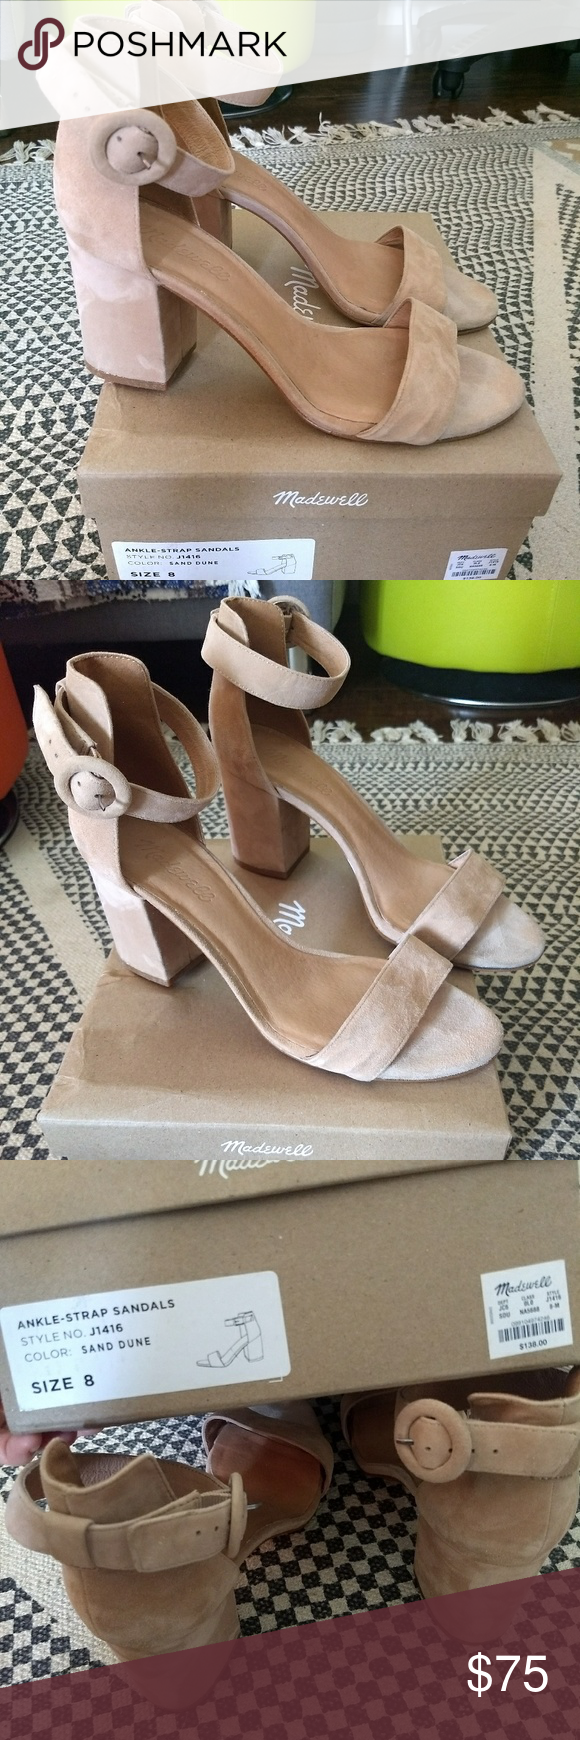 c9b821025ff Madewell the regina ankle-strap sandal sand dune Good condition PRODUCT  DETAILS Timeless suede sandals with a sleek covered buckle and a truly  danceable ...